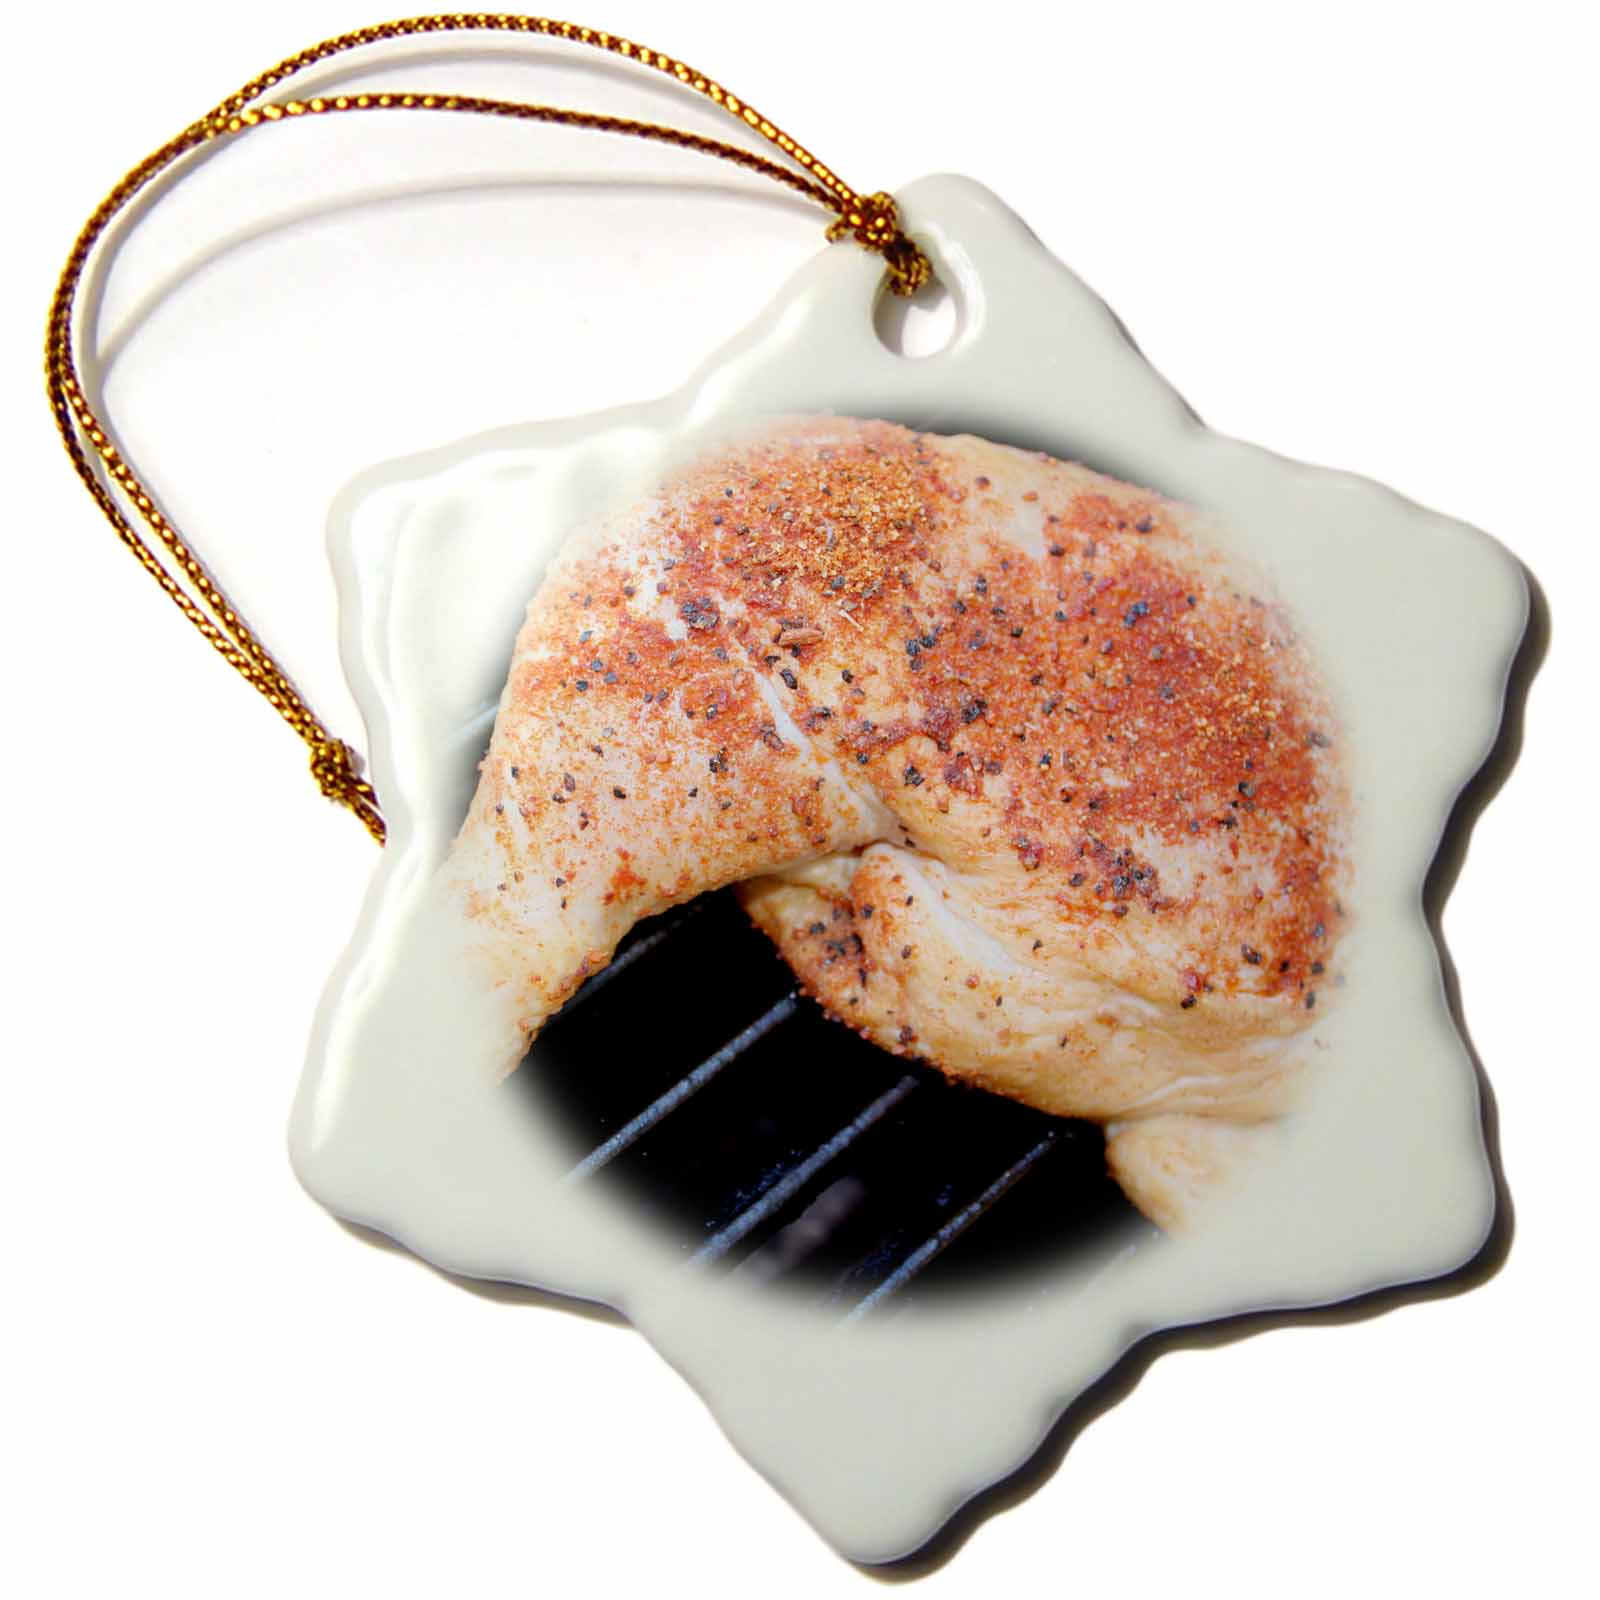 3dRose Close up of BBQ chicken with spice on it., Snowflake Ornament, Porcelain, 3-inch